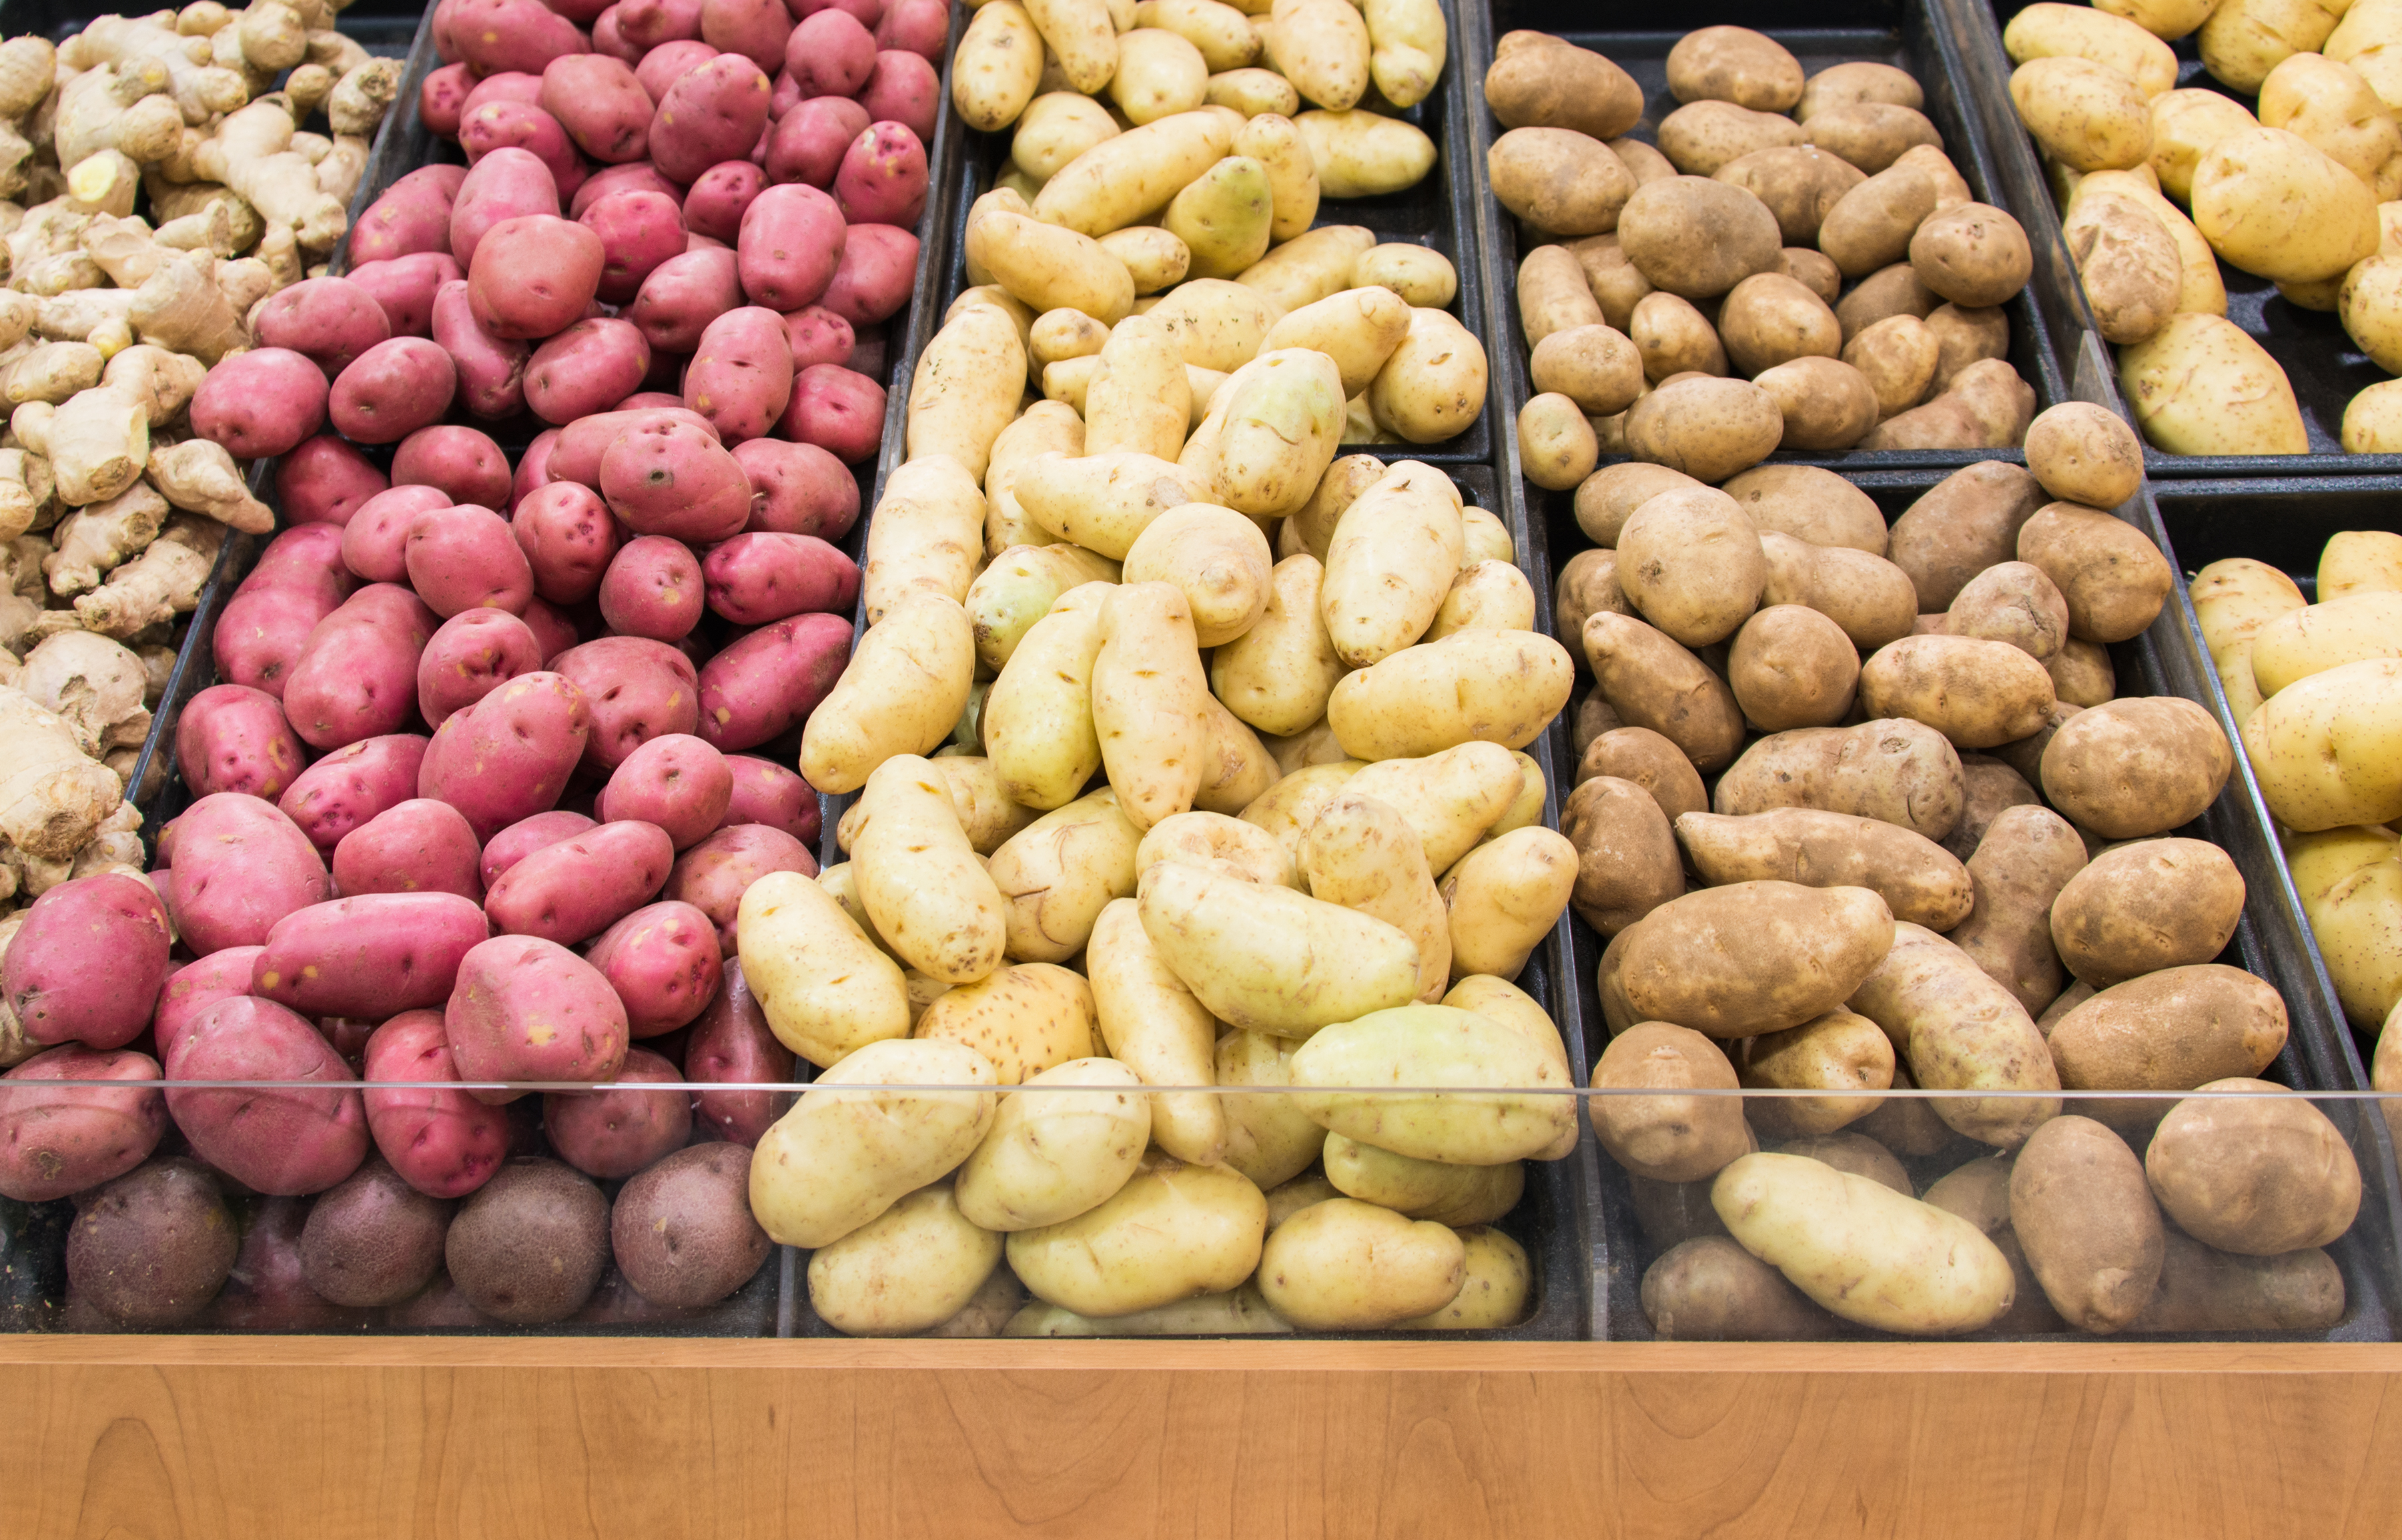 Different colors and varieties of potatoes in a grocery store